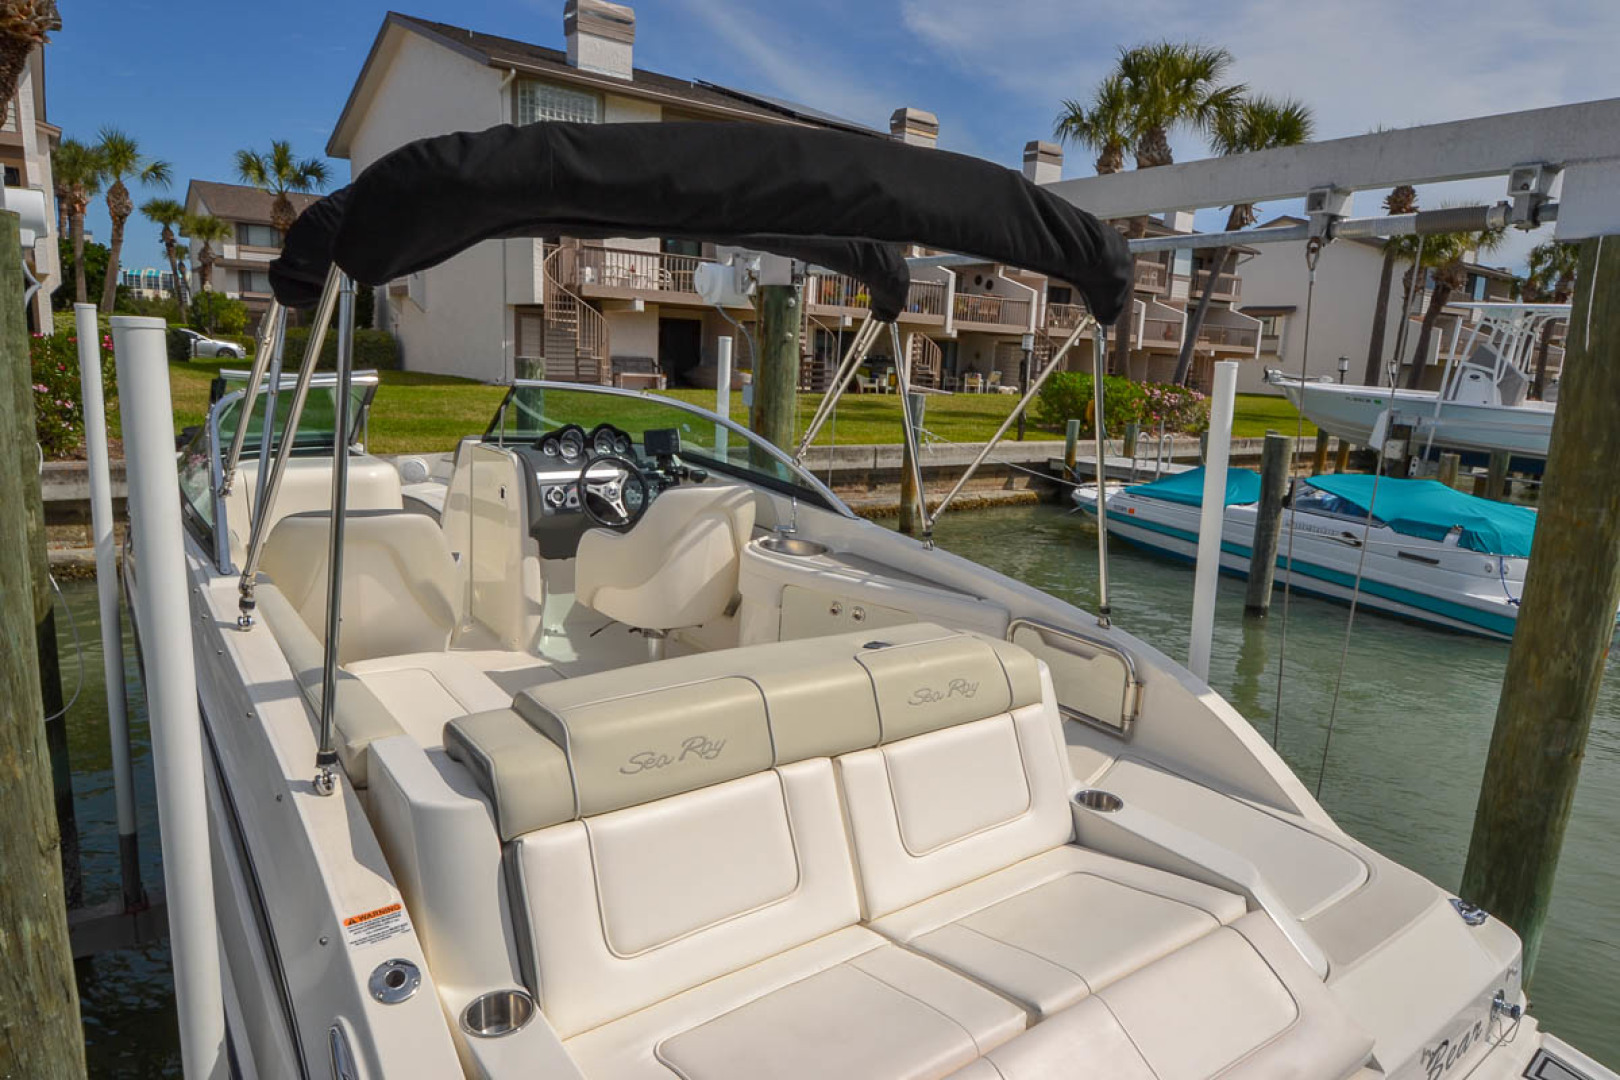 2012 Sea Ray 260 SunDeck-10.jpg